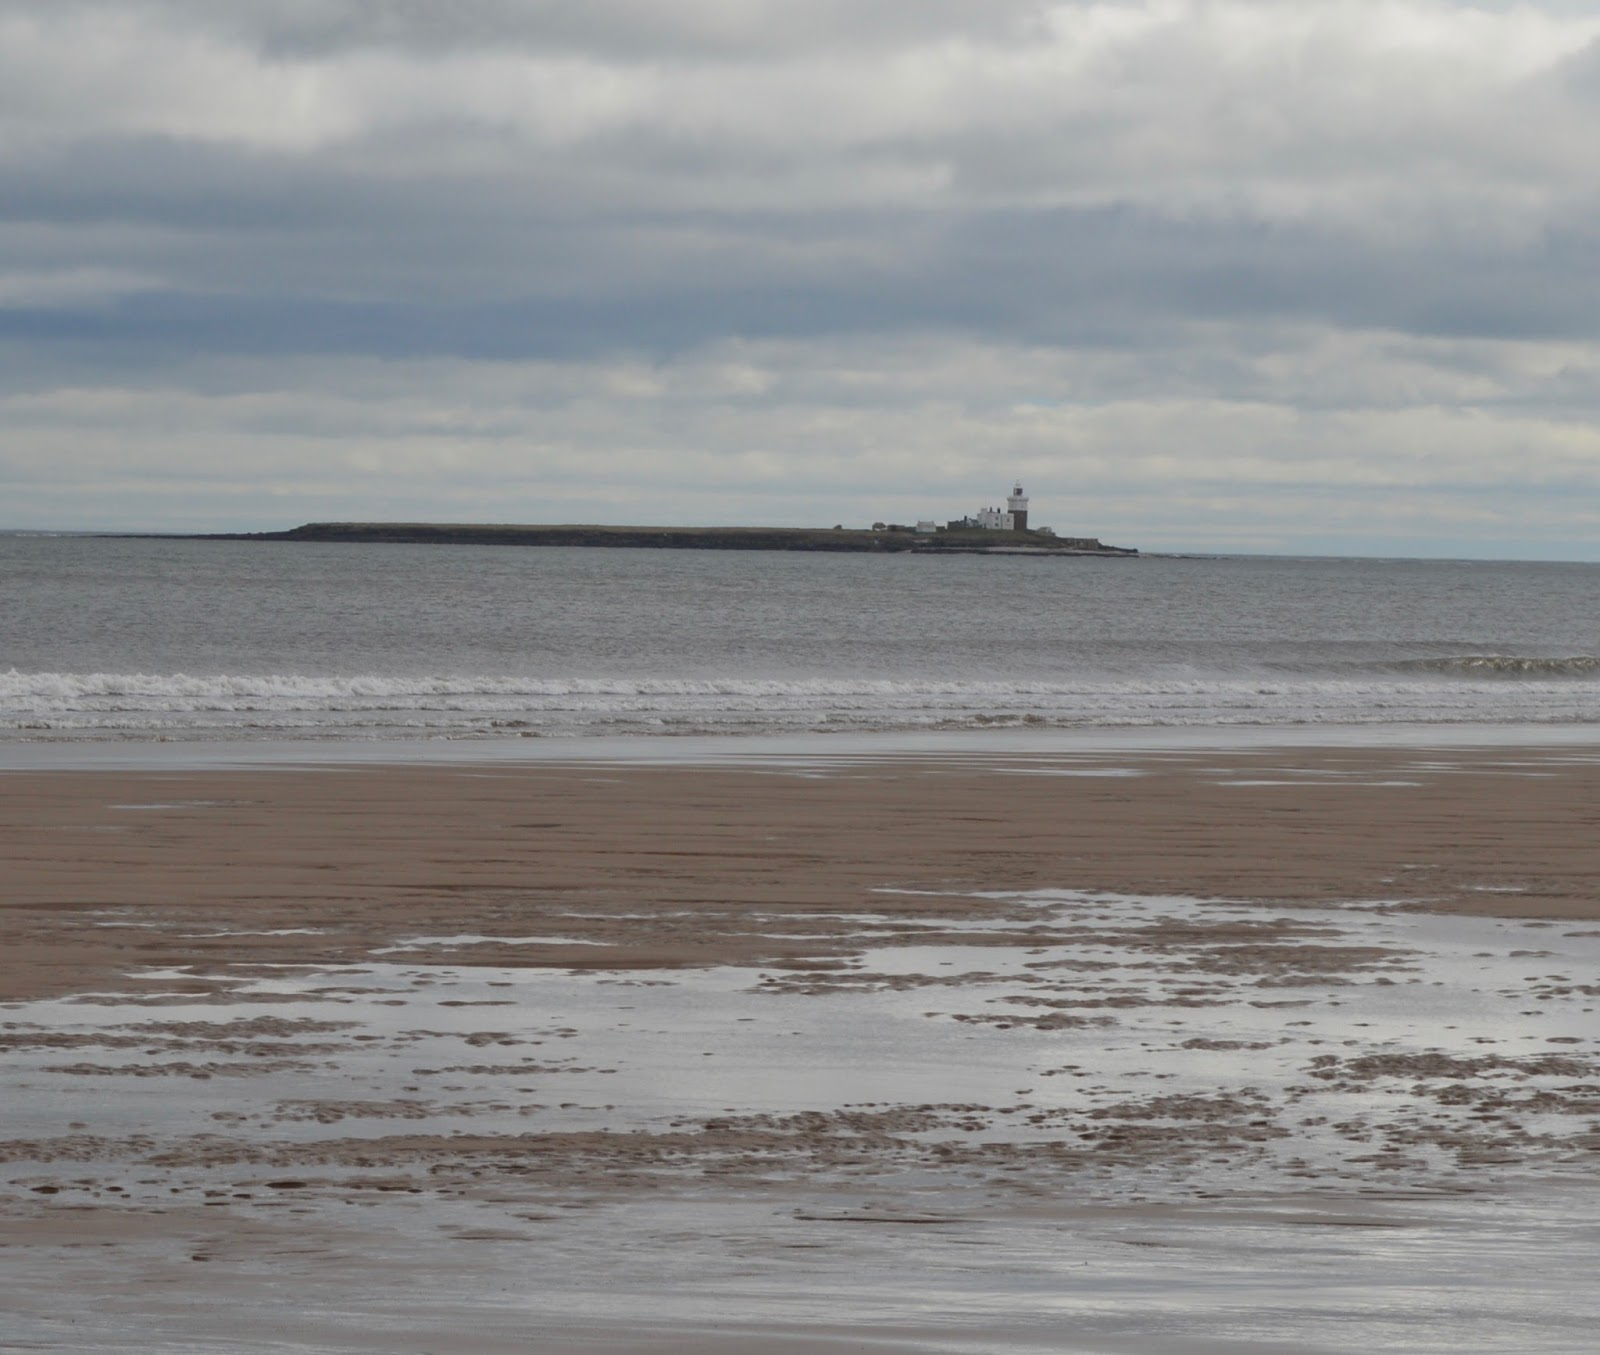 Warkworth beach - view towards Coquet island, Northumberland